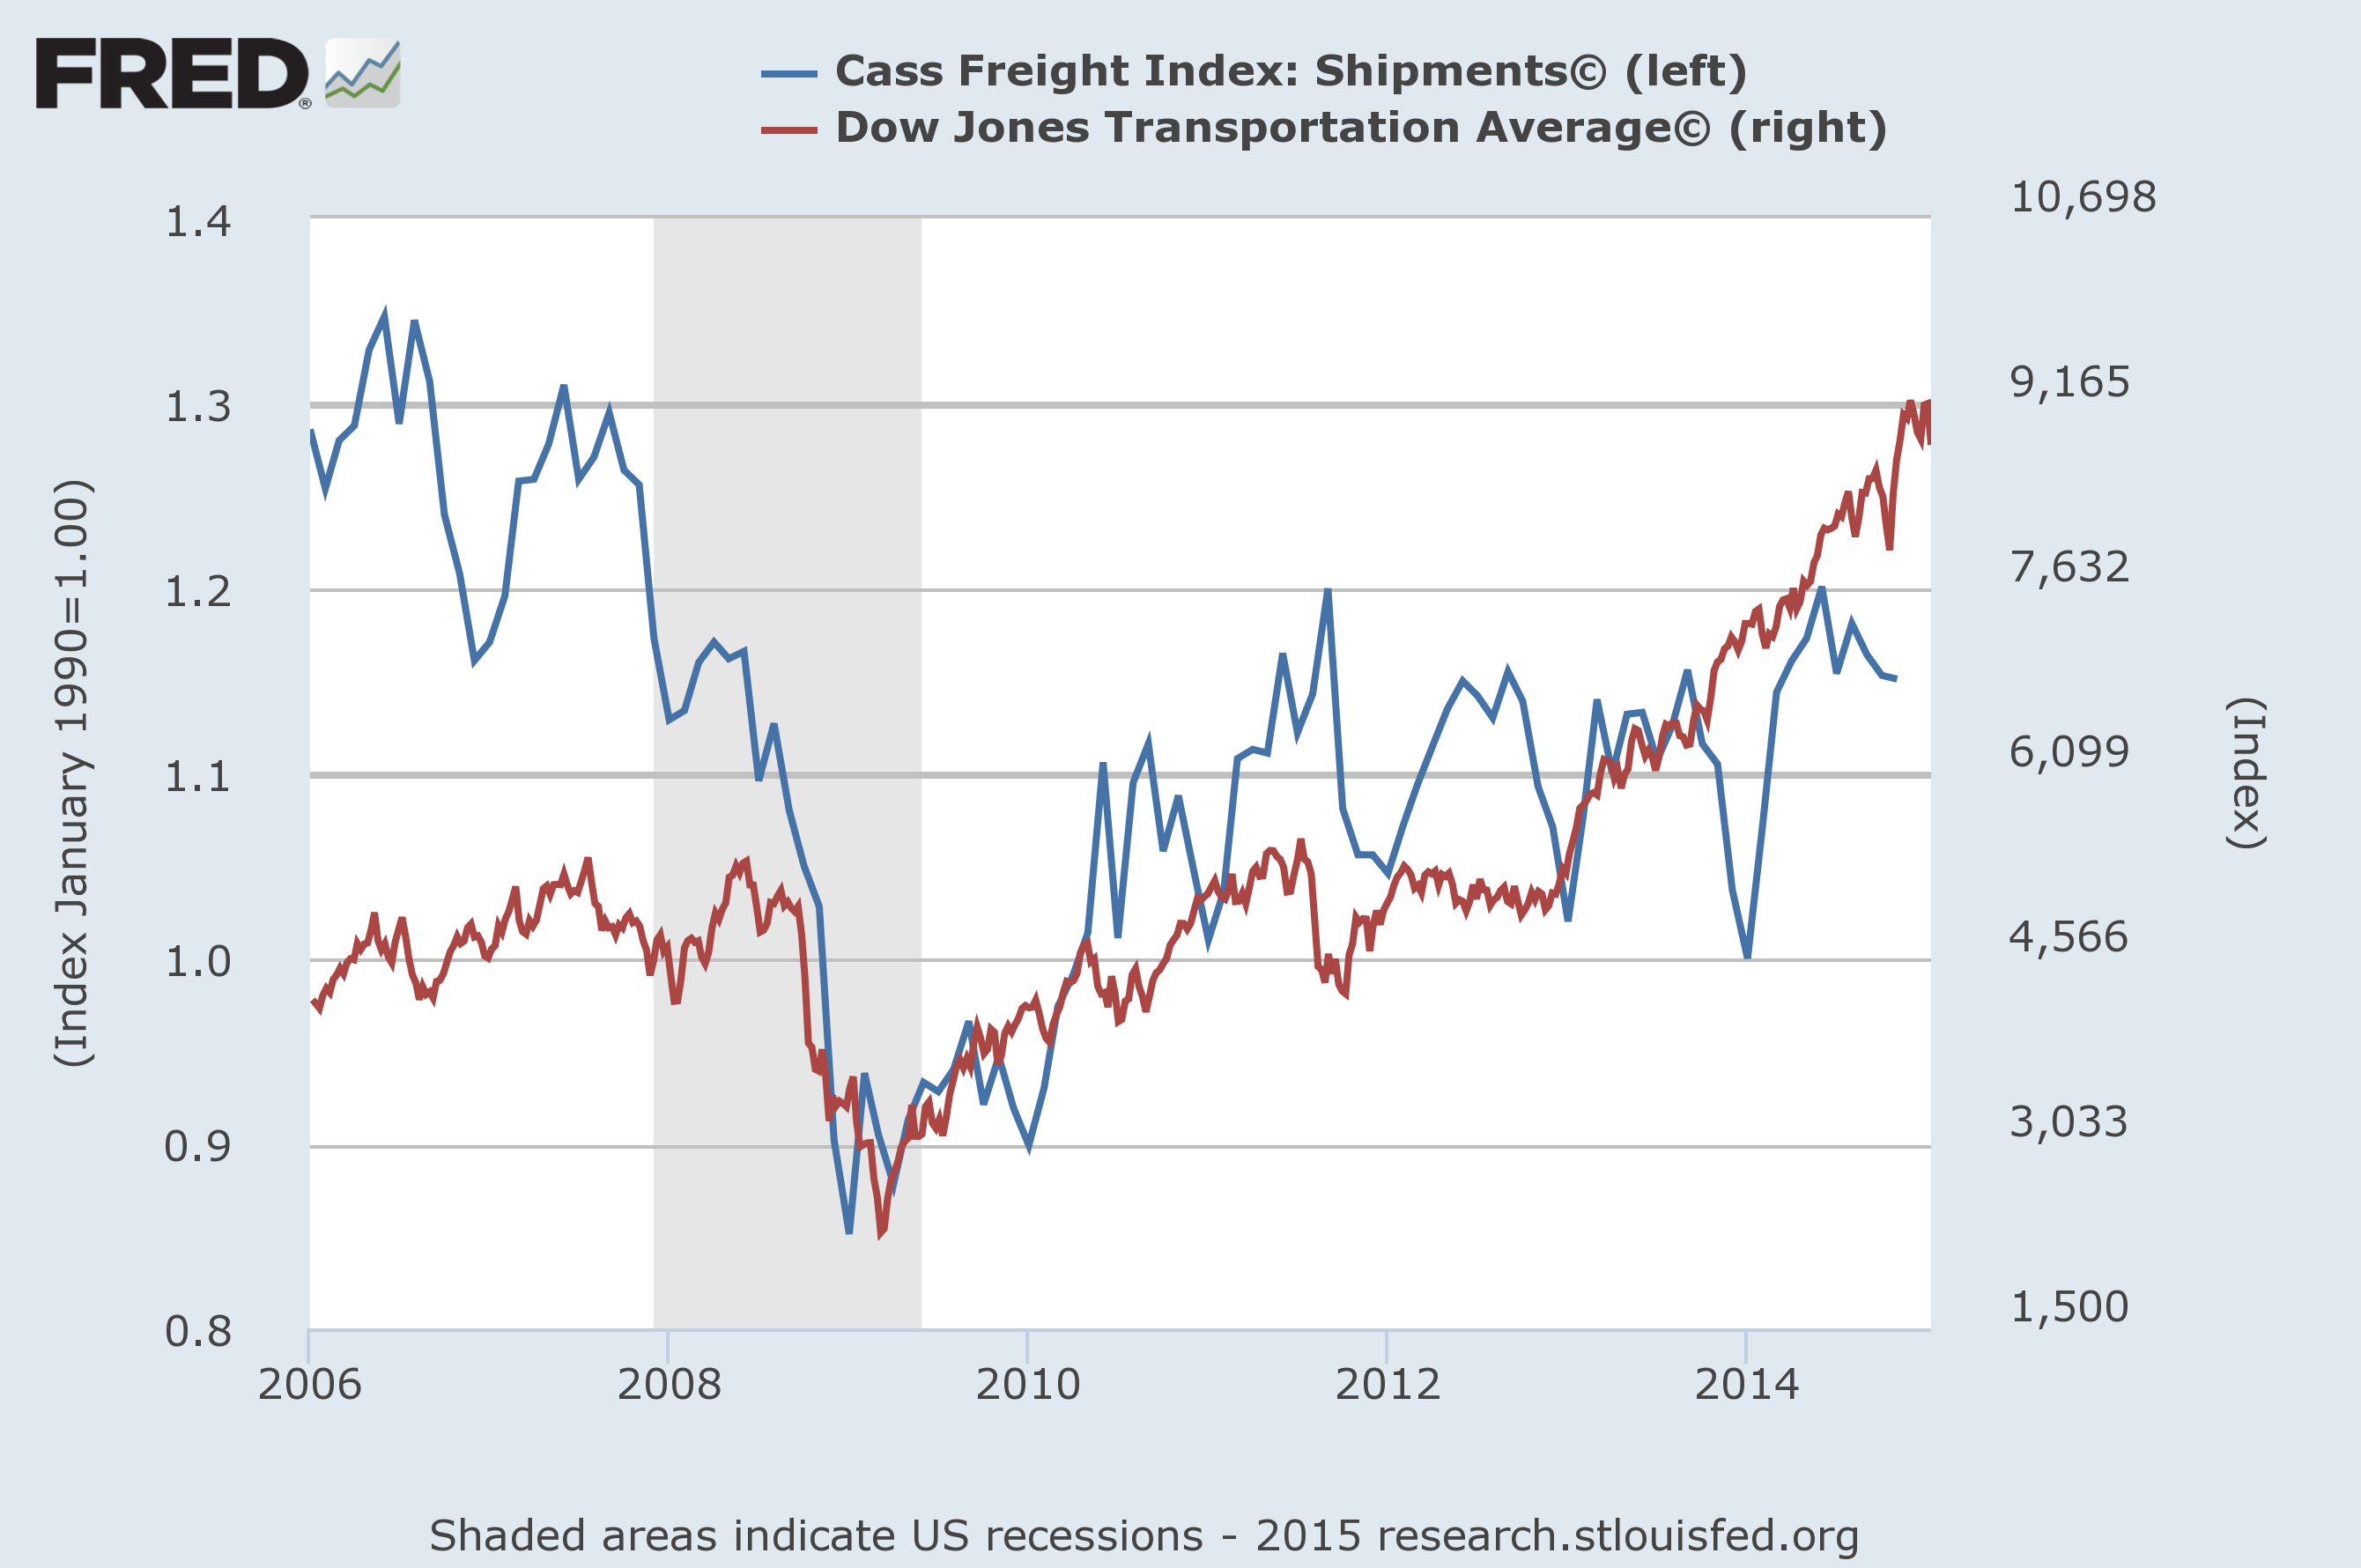 cass freight index vs. transport index